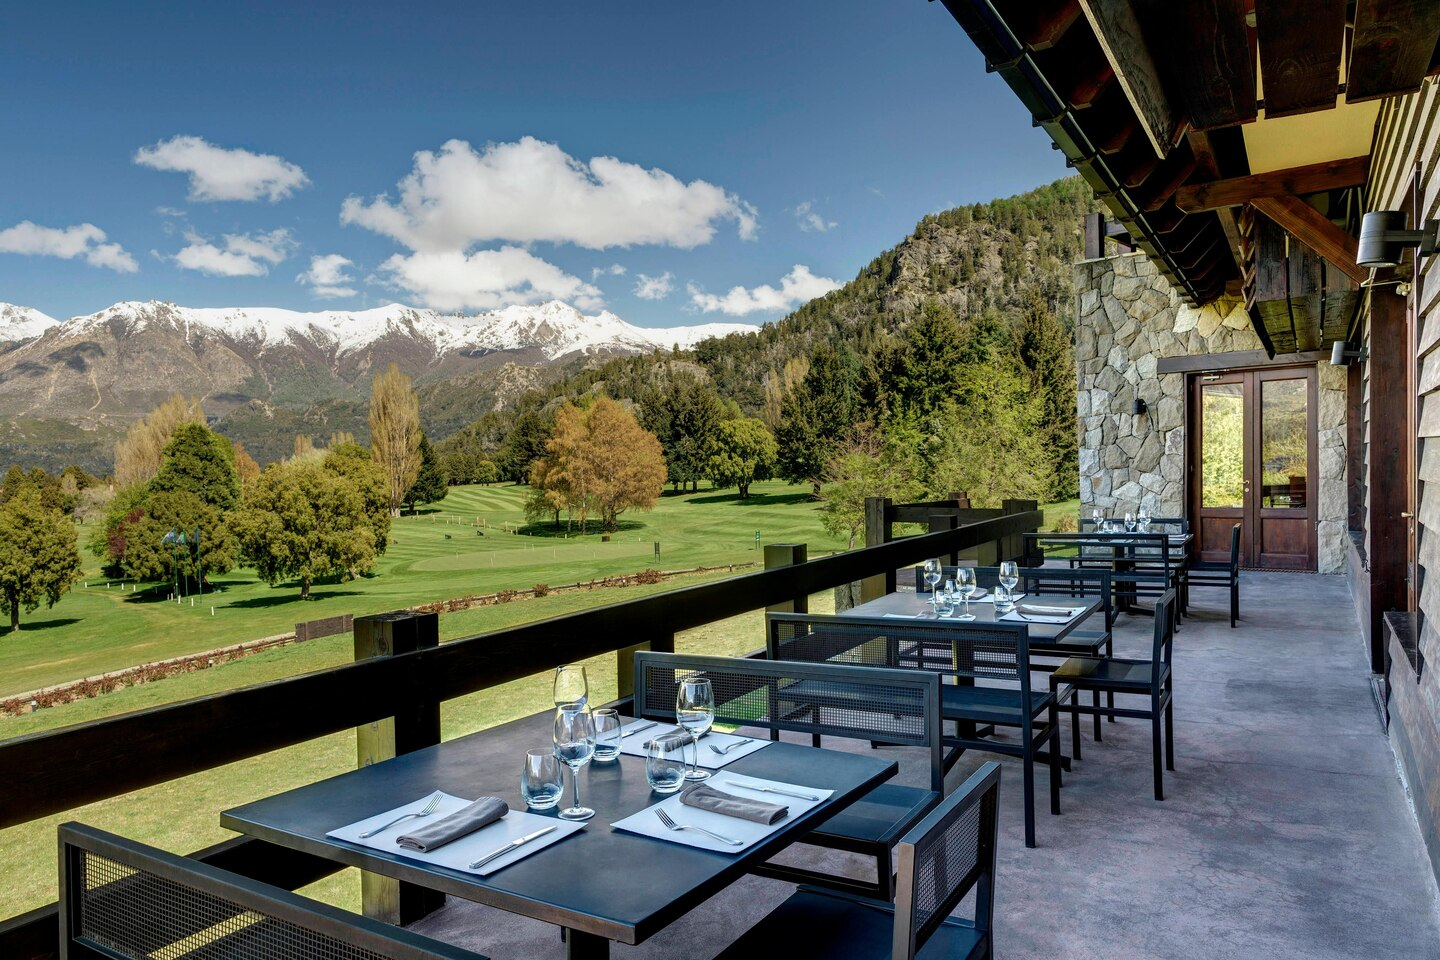 Where to stay when traveling in Argentina